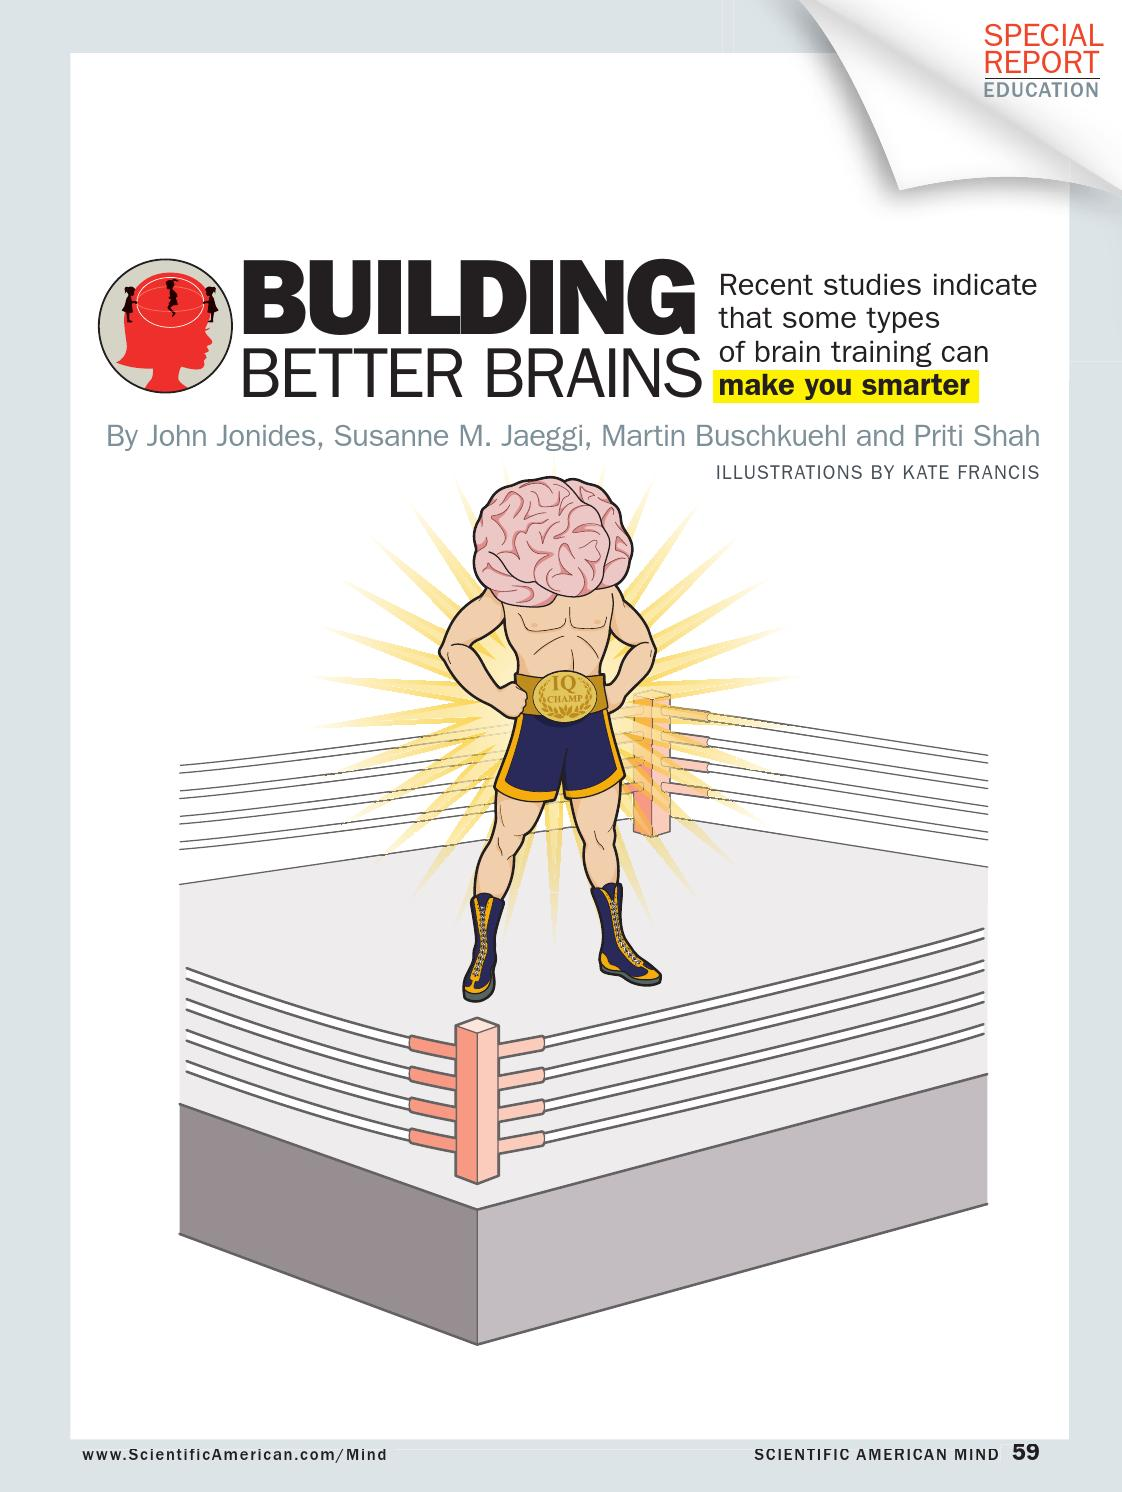 Brain Training Doesnt Make You Smarter >> Scientific America Building Better Brains 2012 4 By Abslansmors Issuu